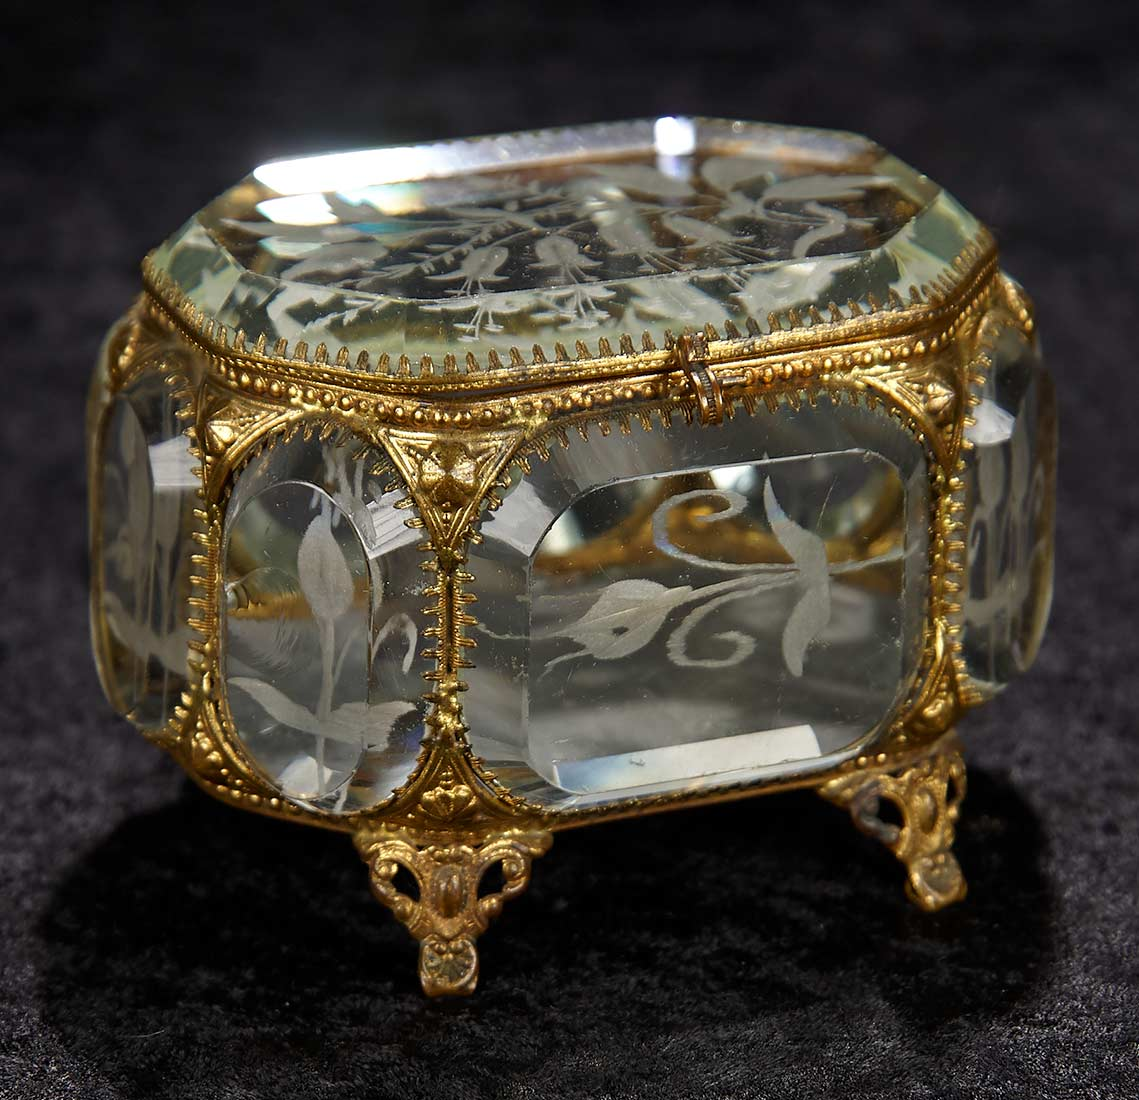 Interlude 273 French EightSided Beveled Glass Jewelry Box with